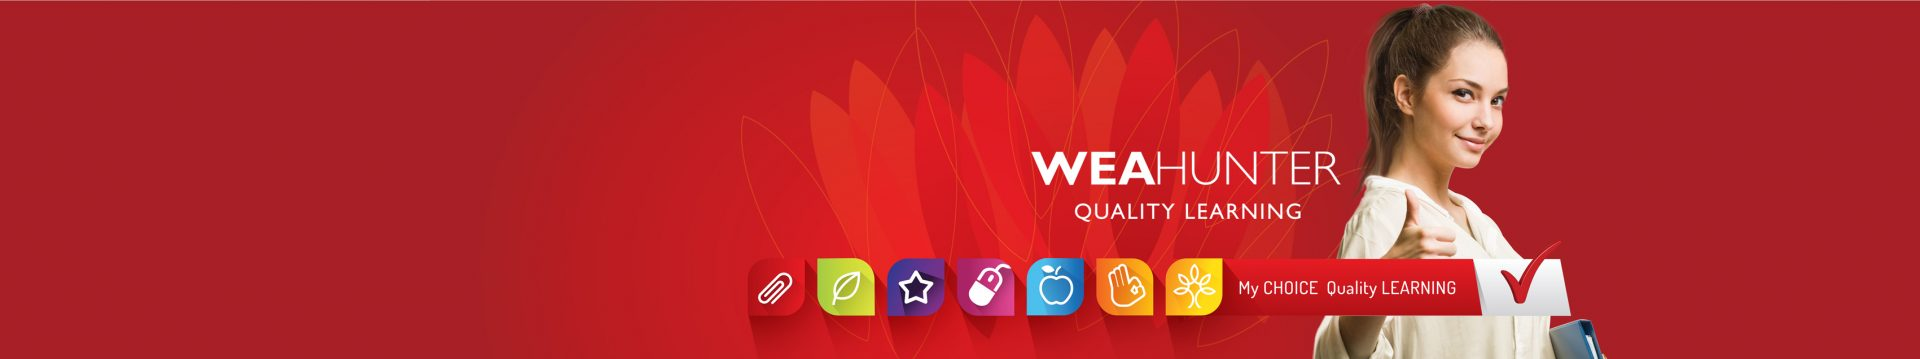 Banner for WEA Hunter branding with red with icons